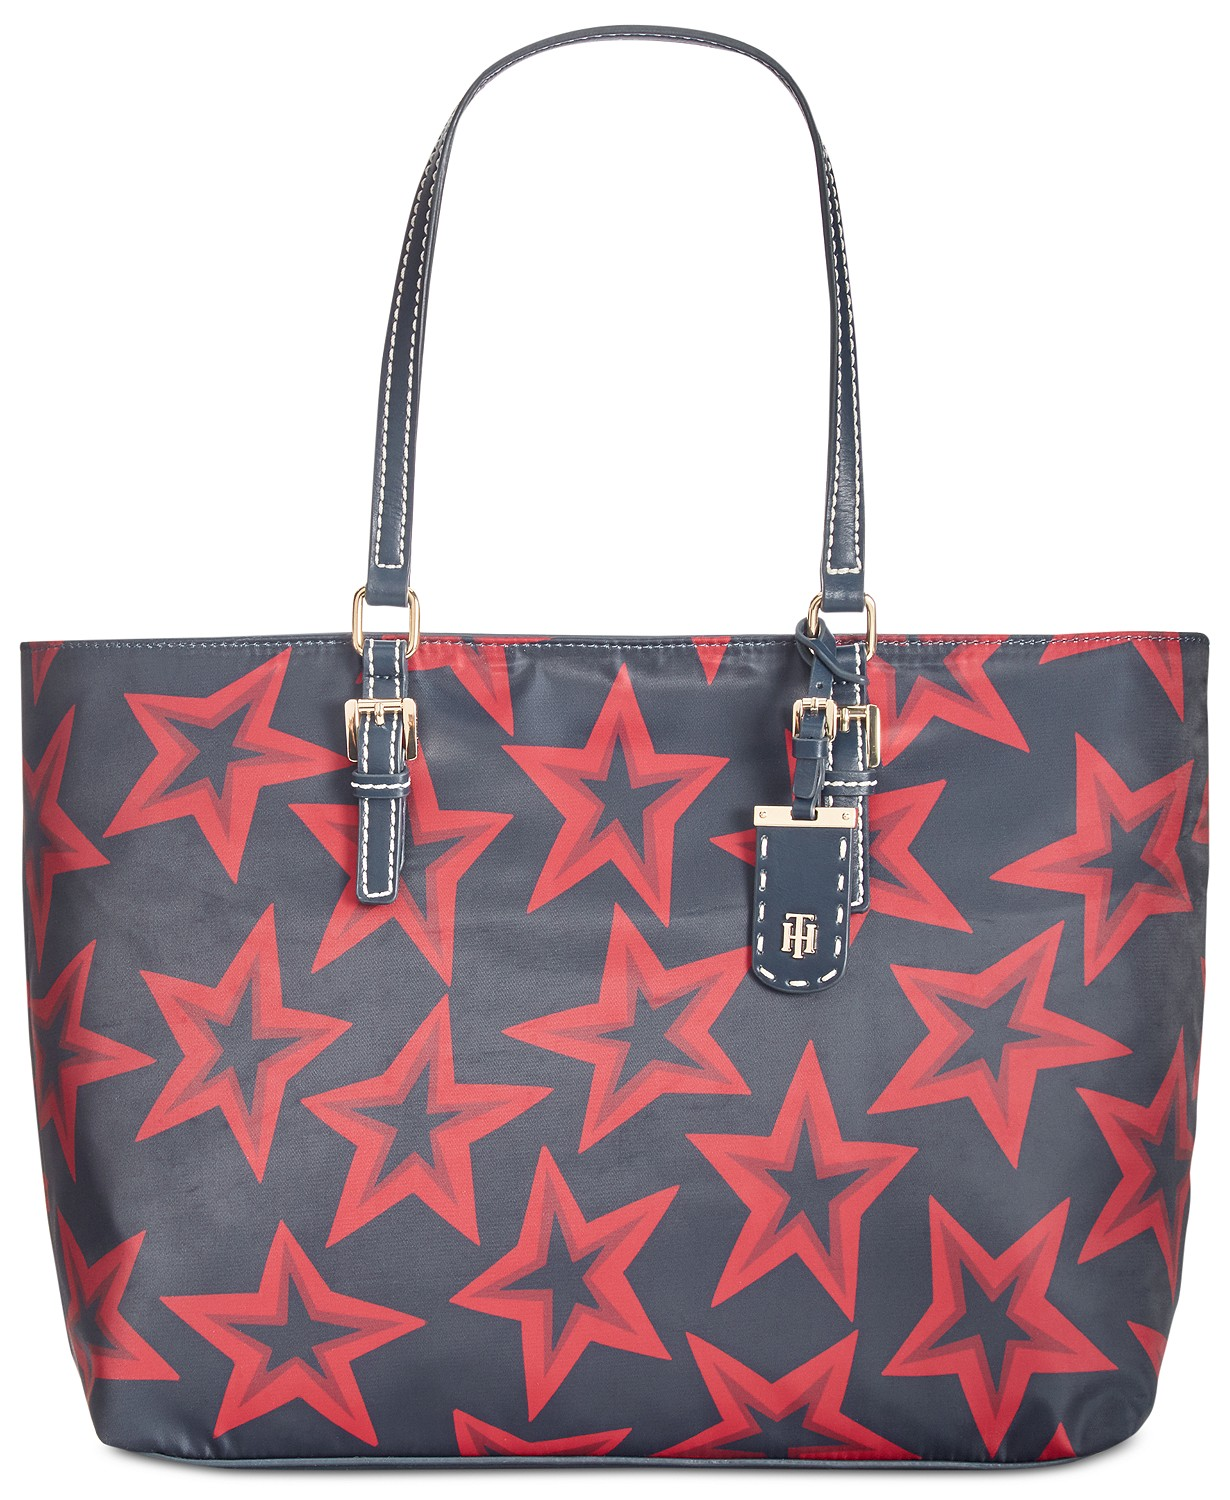 4524637b412613 MAcy's: Tommy Hilfiger Julia Smooth Star-Print Tote for $27.96 (Was $125) +  store pickup.